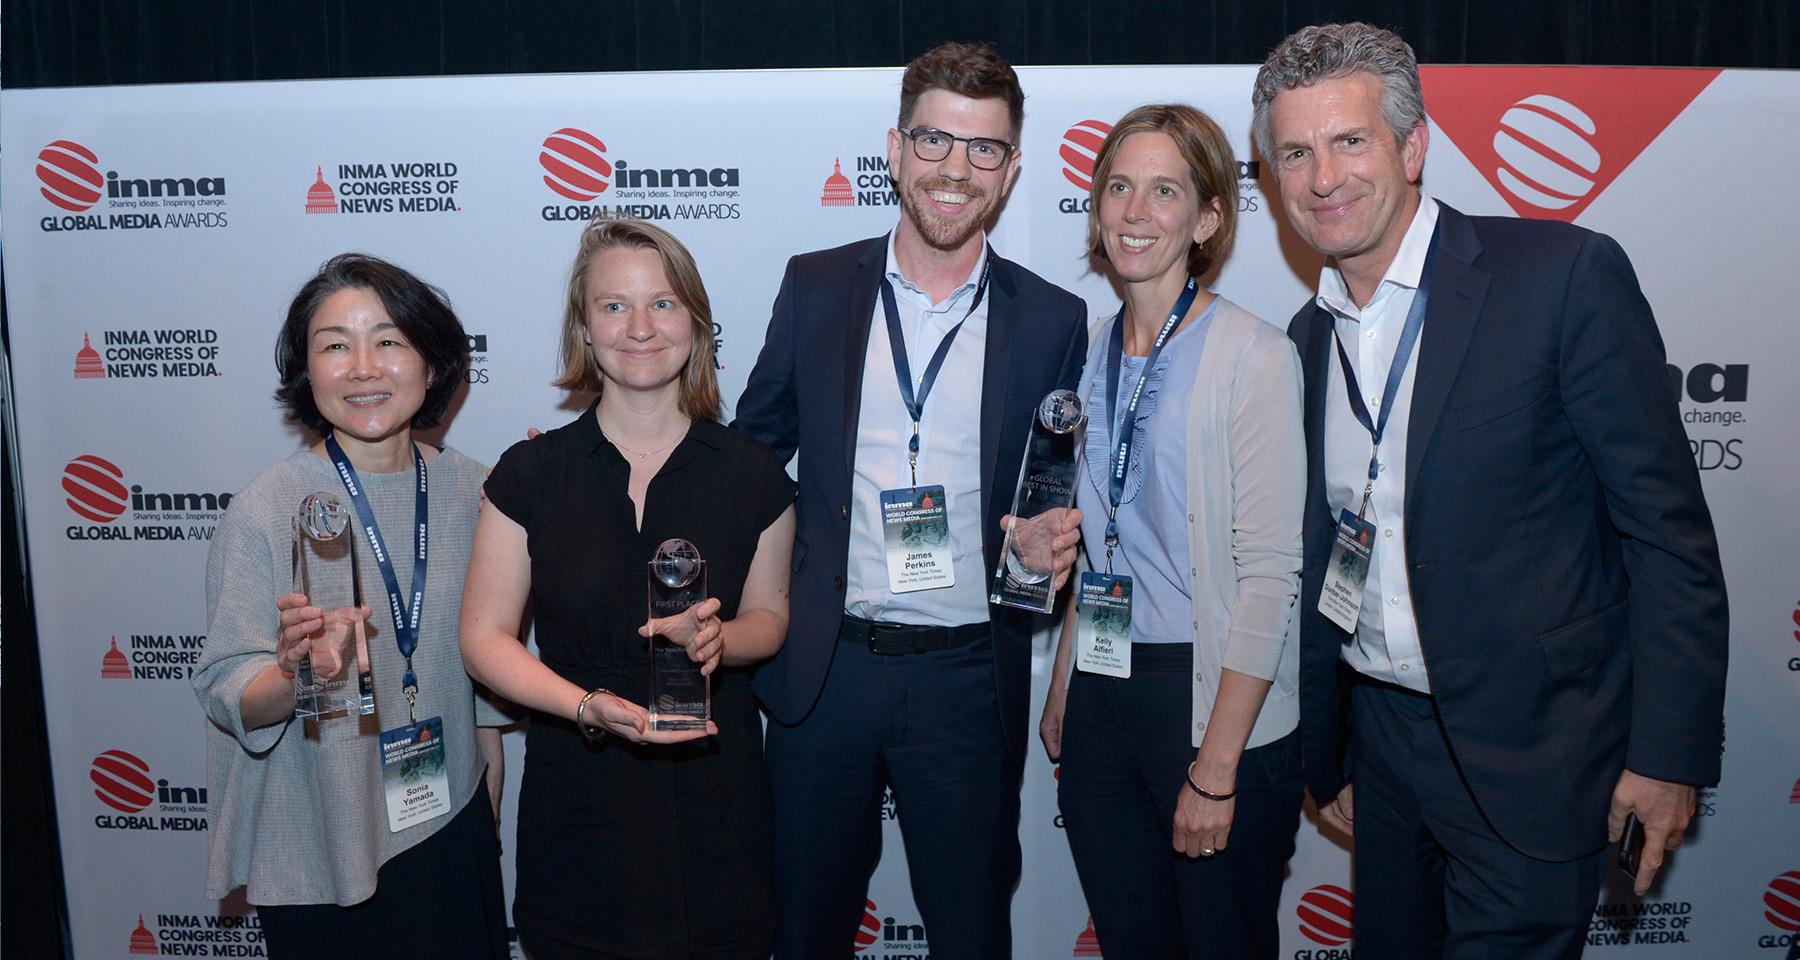 INMA reveals Global Media Awards winners, New York Times nabs top honour